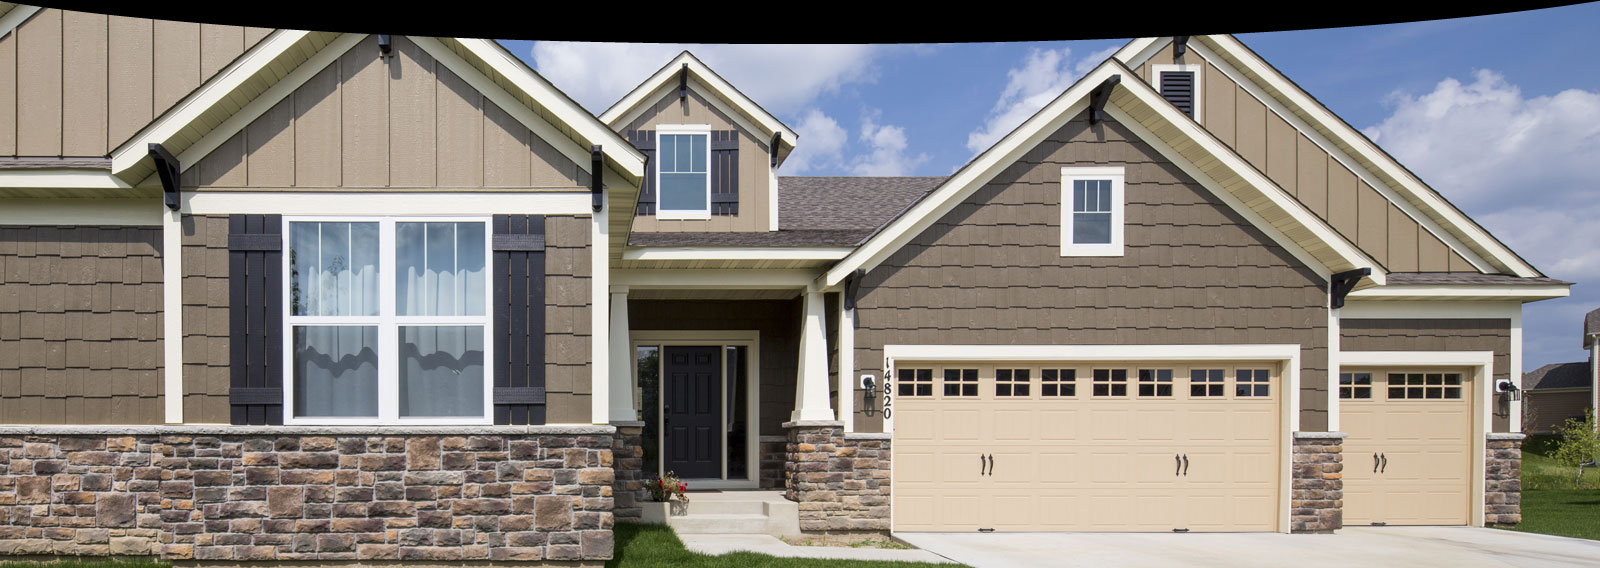 Milwaukee roofing, siding, windows, doors, and carpentry experts.